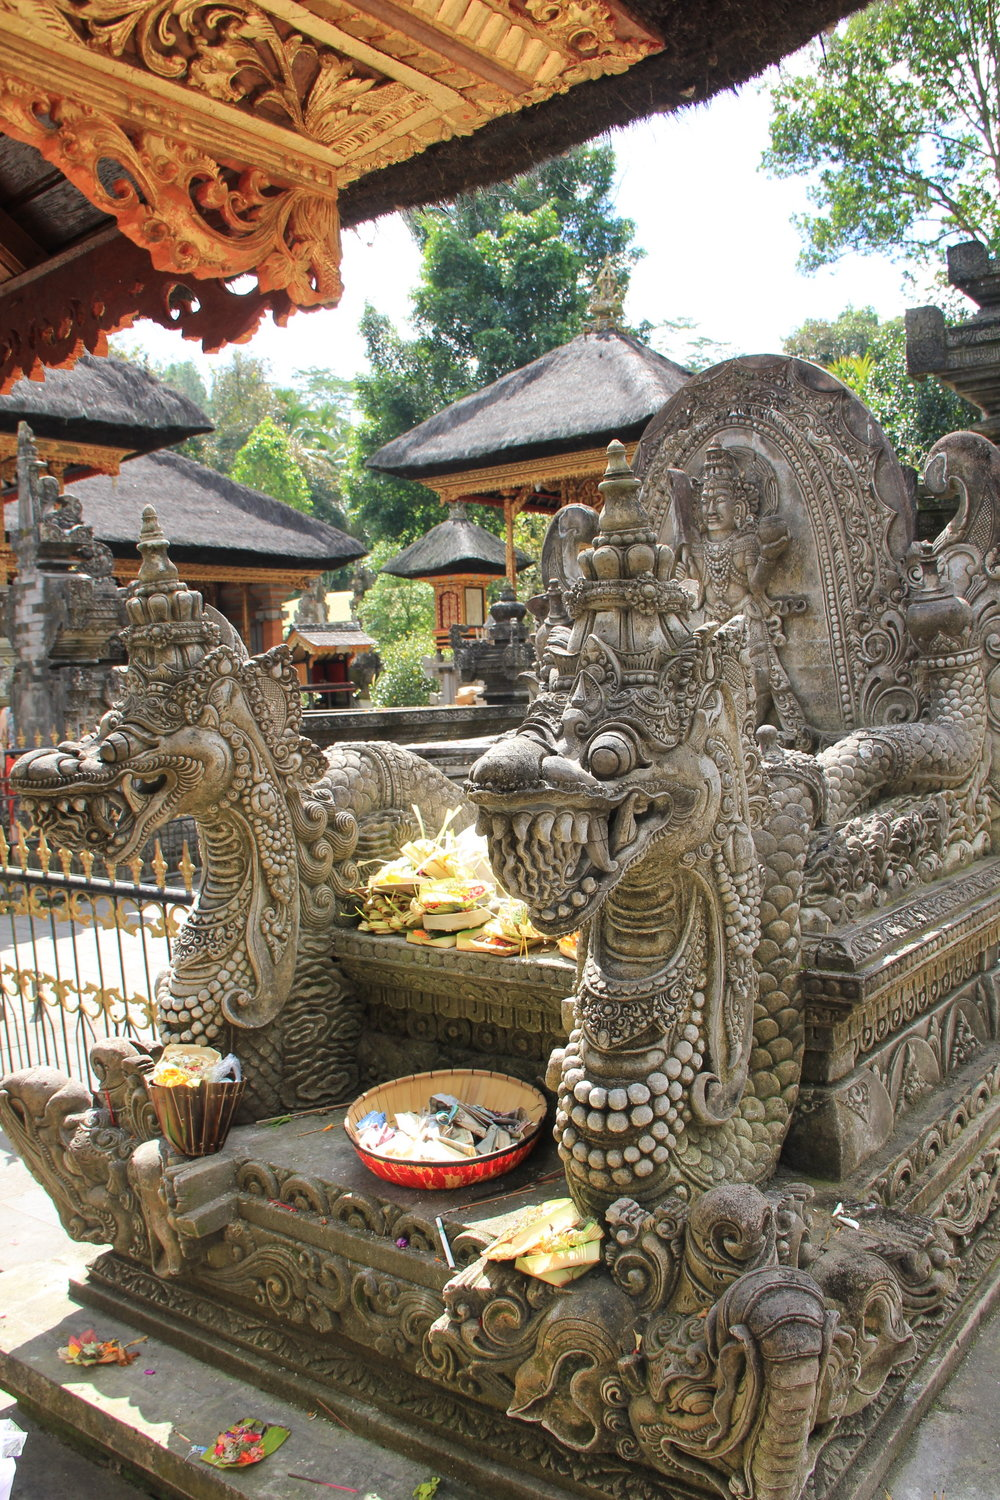 Intricate details that make the difference 🐲 at Pura Lempuyang.